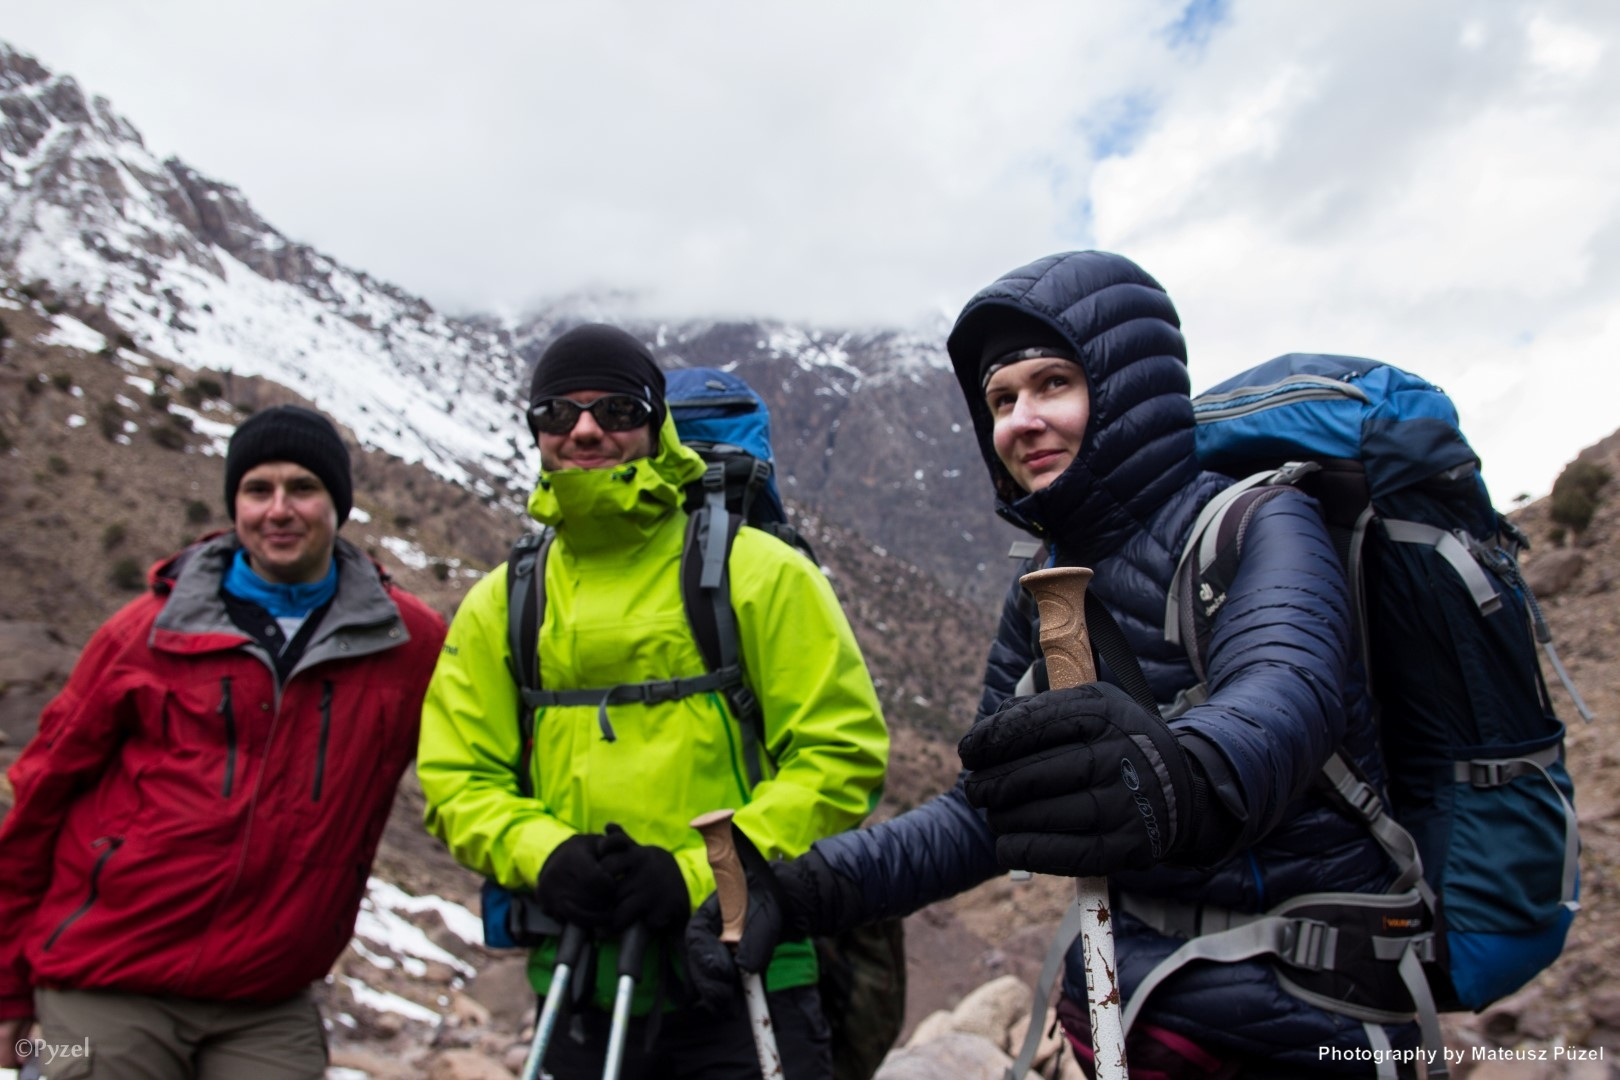 toubkal treks - trekking in morocco, family holidays, morocco, toubkal holidays, atlas, sahara desert, tours, guides, high atlas, imlil, treks, hiking, tailor-made